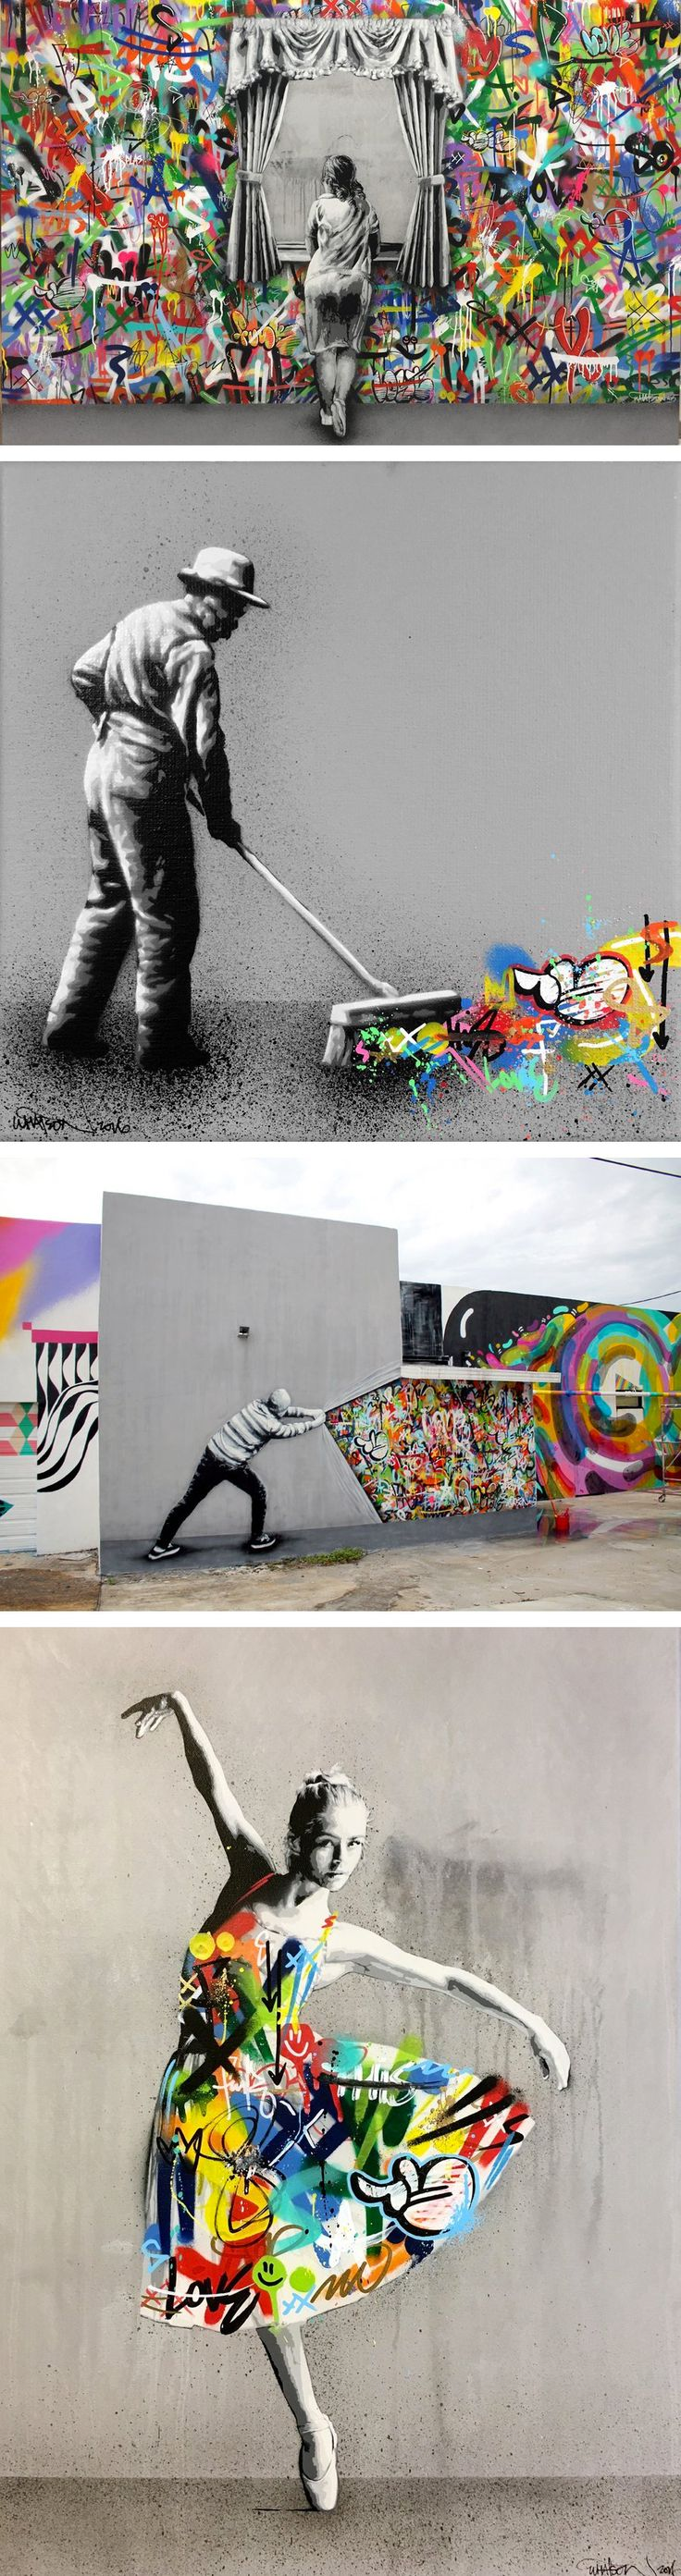 Famous graffiti art quotes - Find This Pin And More On Graffiti Street Mural Art By Natedagr8no